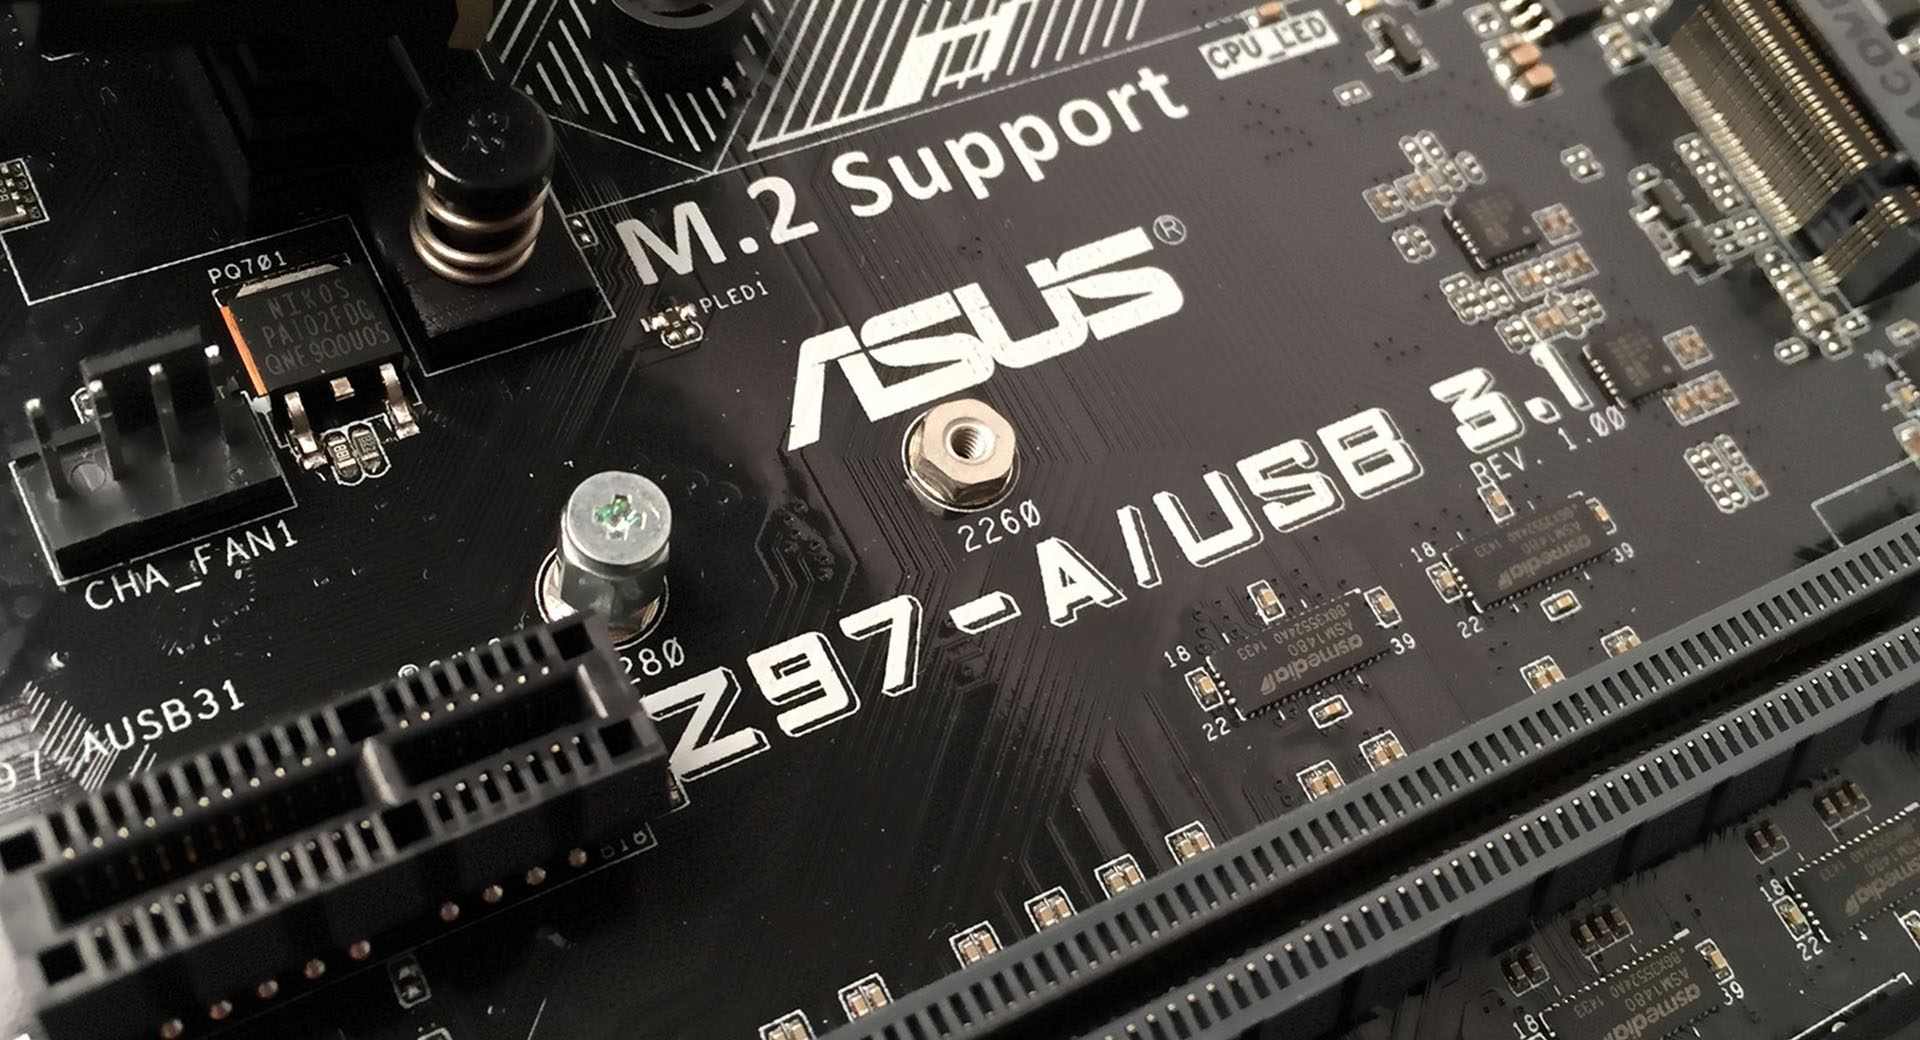 assistenza asus palermo